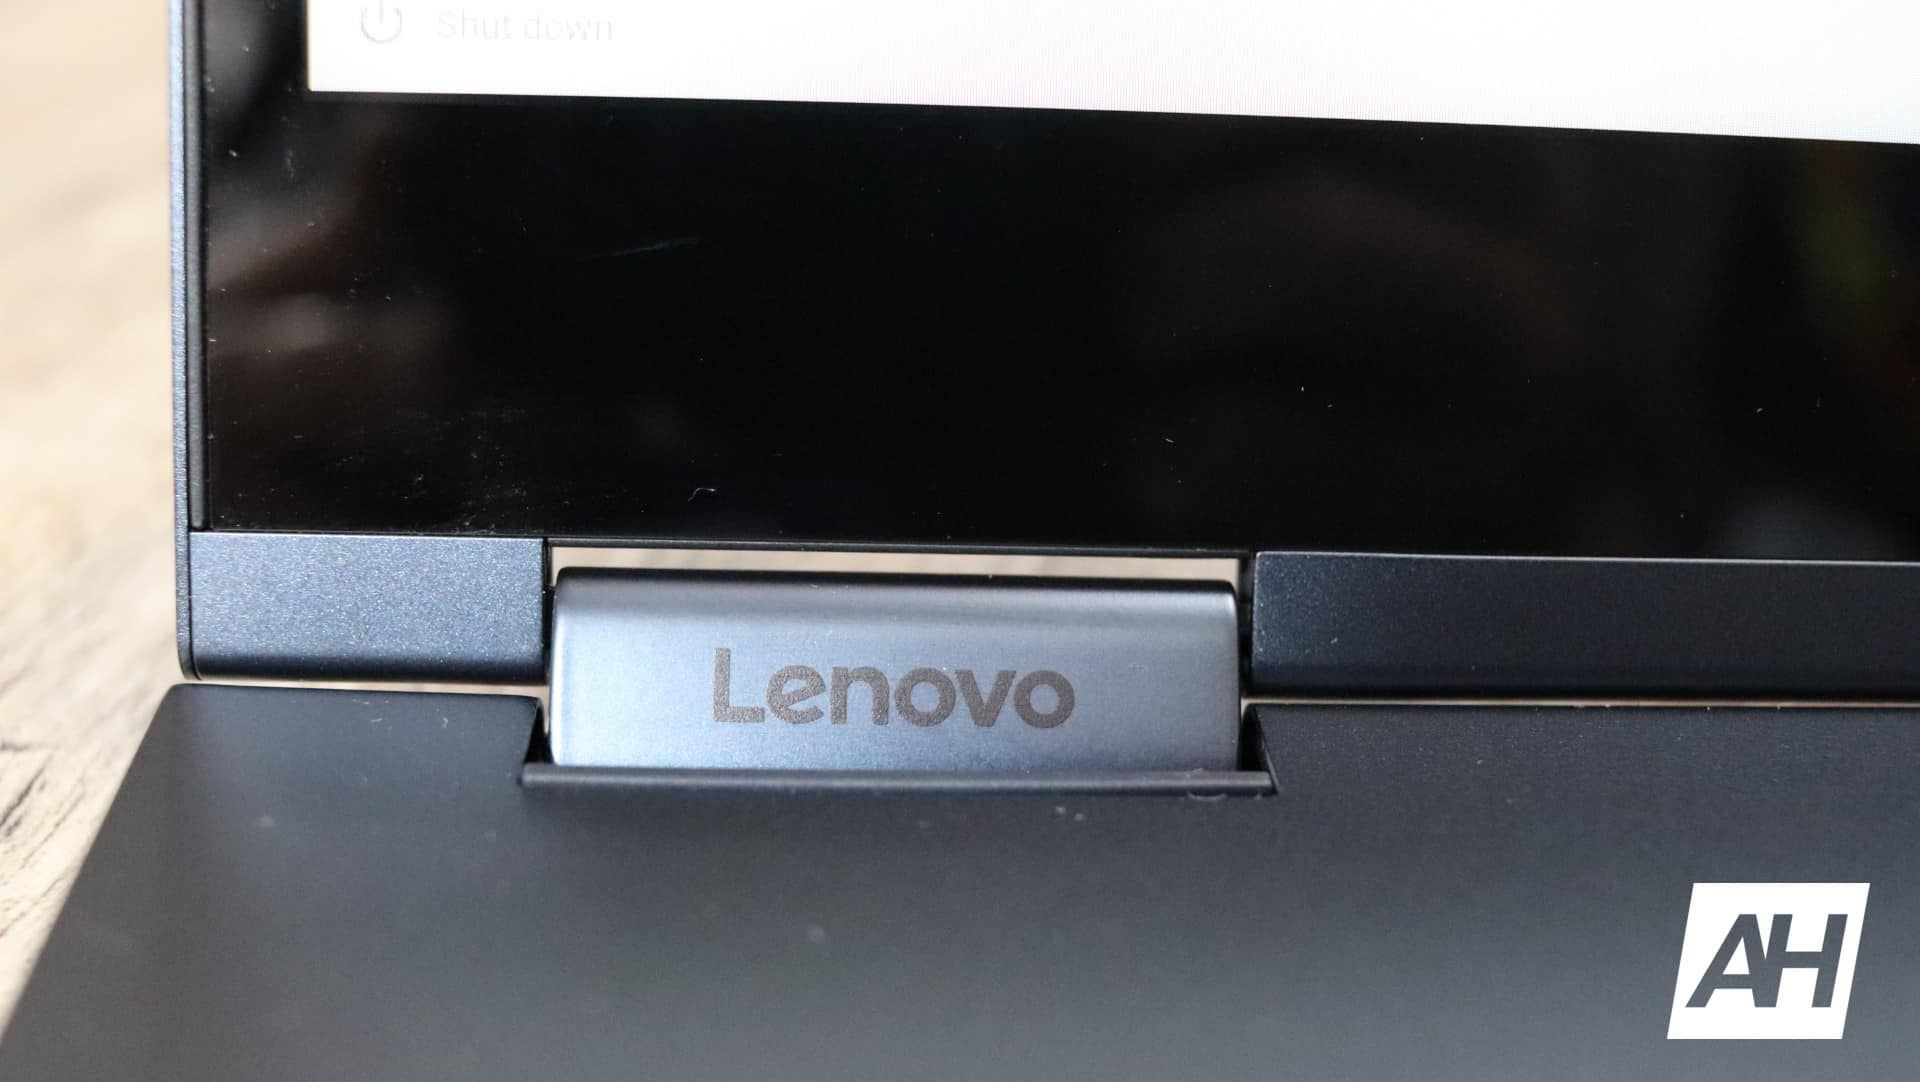 Lenovo Yoga Chromebook C630 Review Hardware AH 22